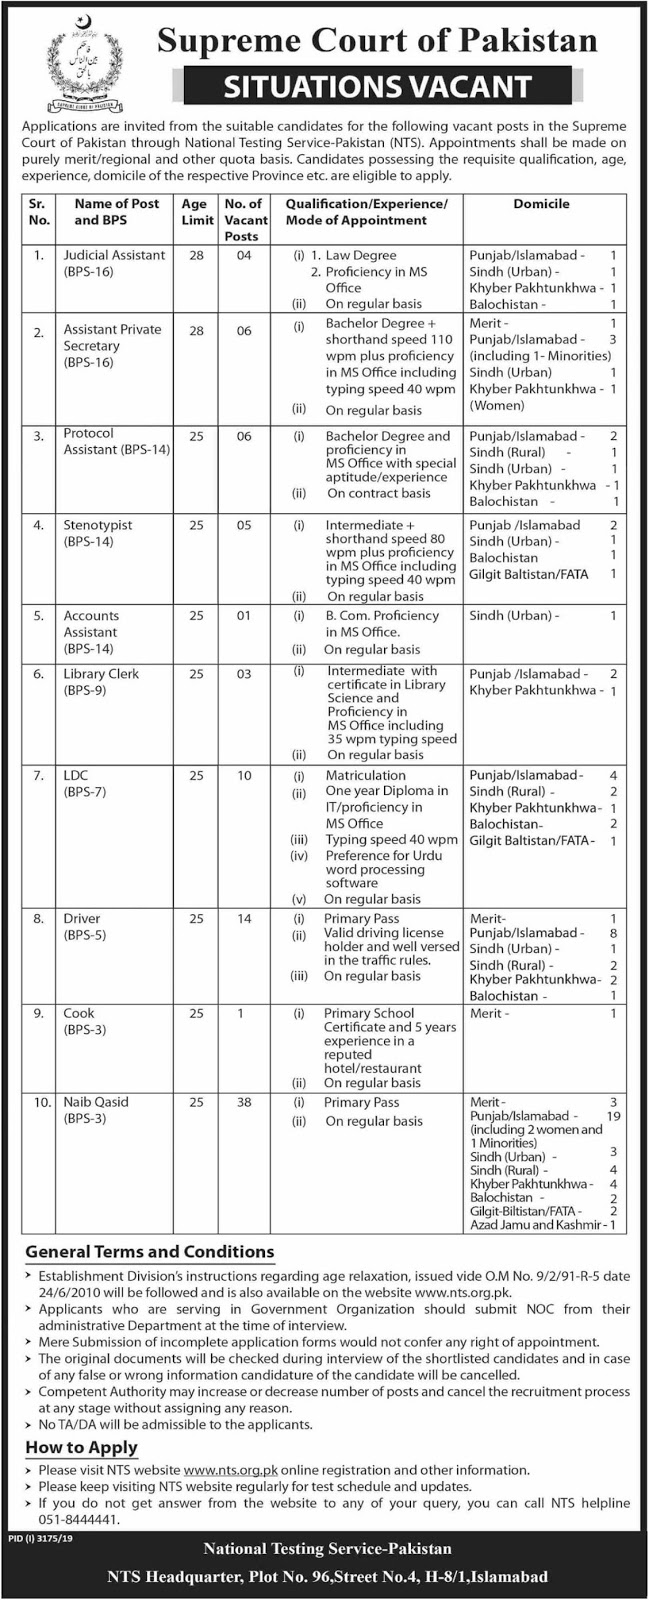 Nts jobs in Supreme Court of Pakistan 2019